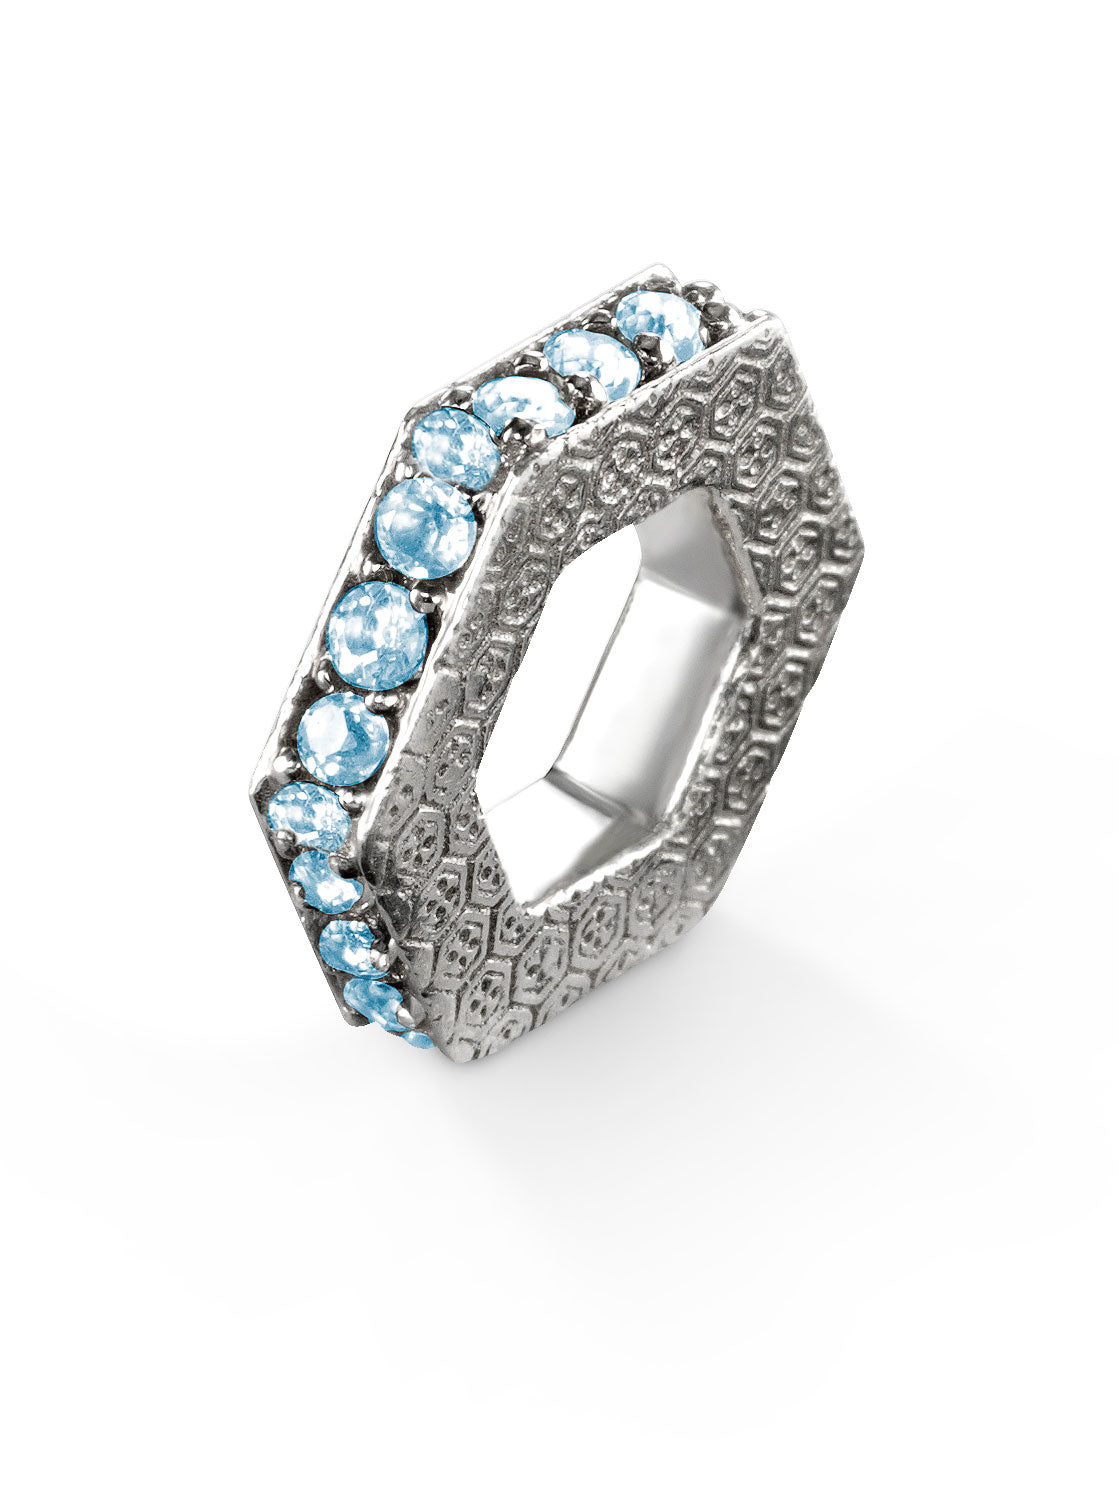 Bcouture March Keepsake-Aquamarine